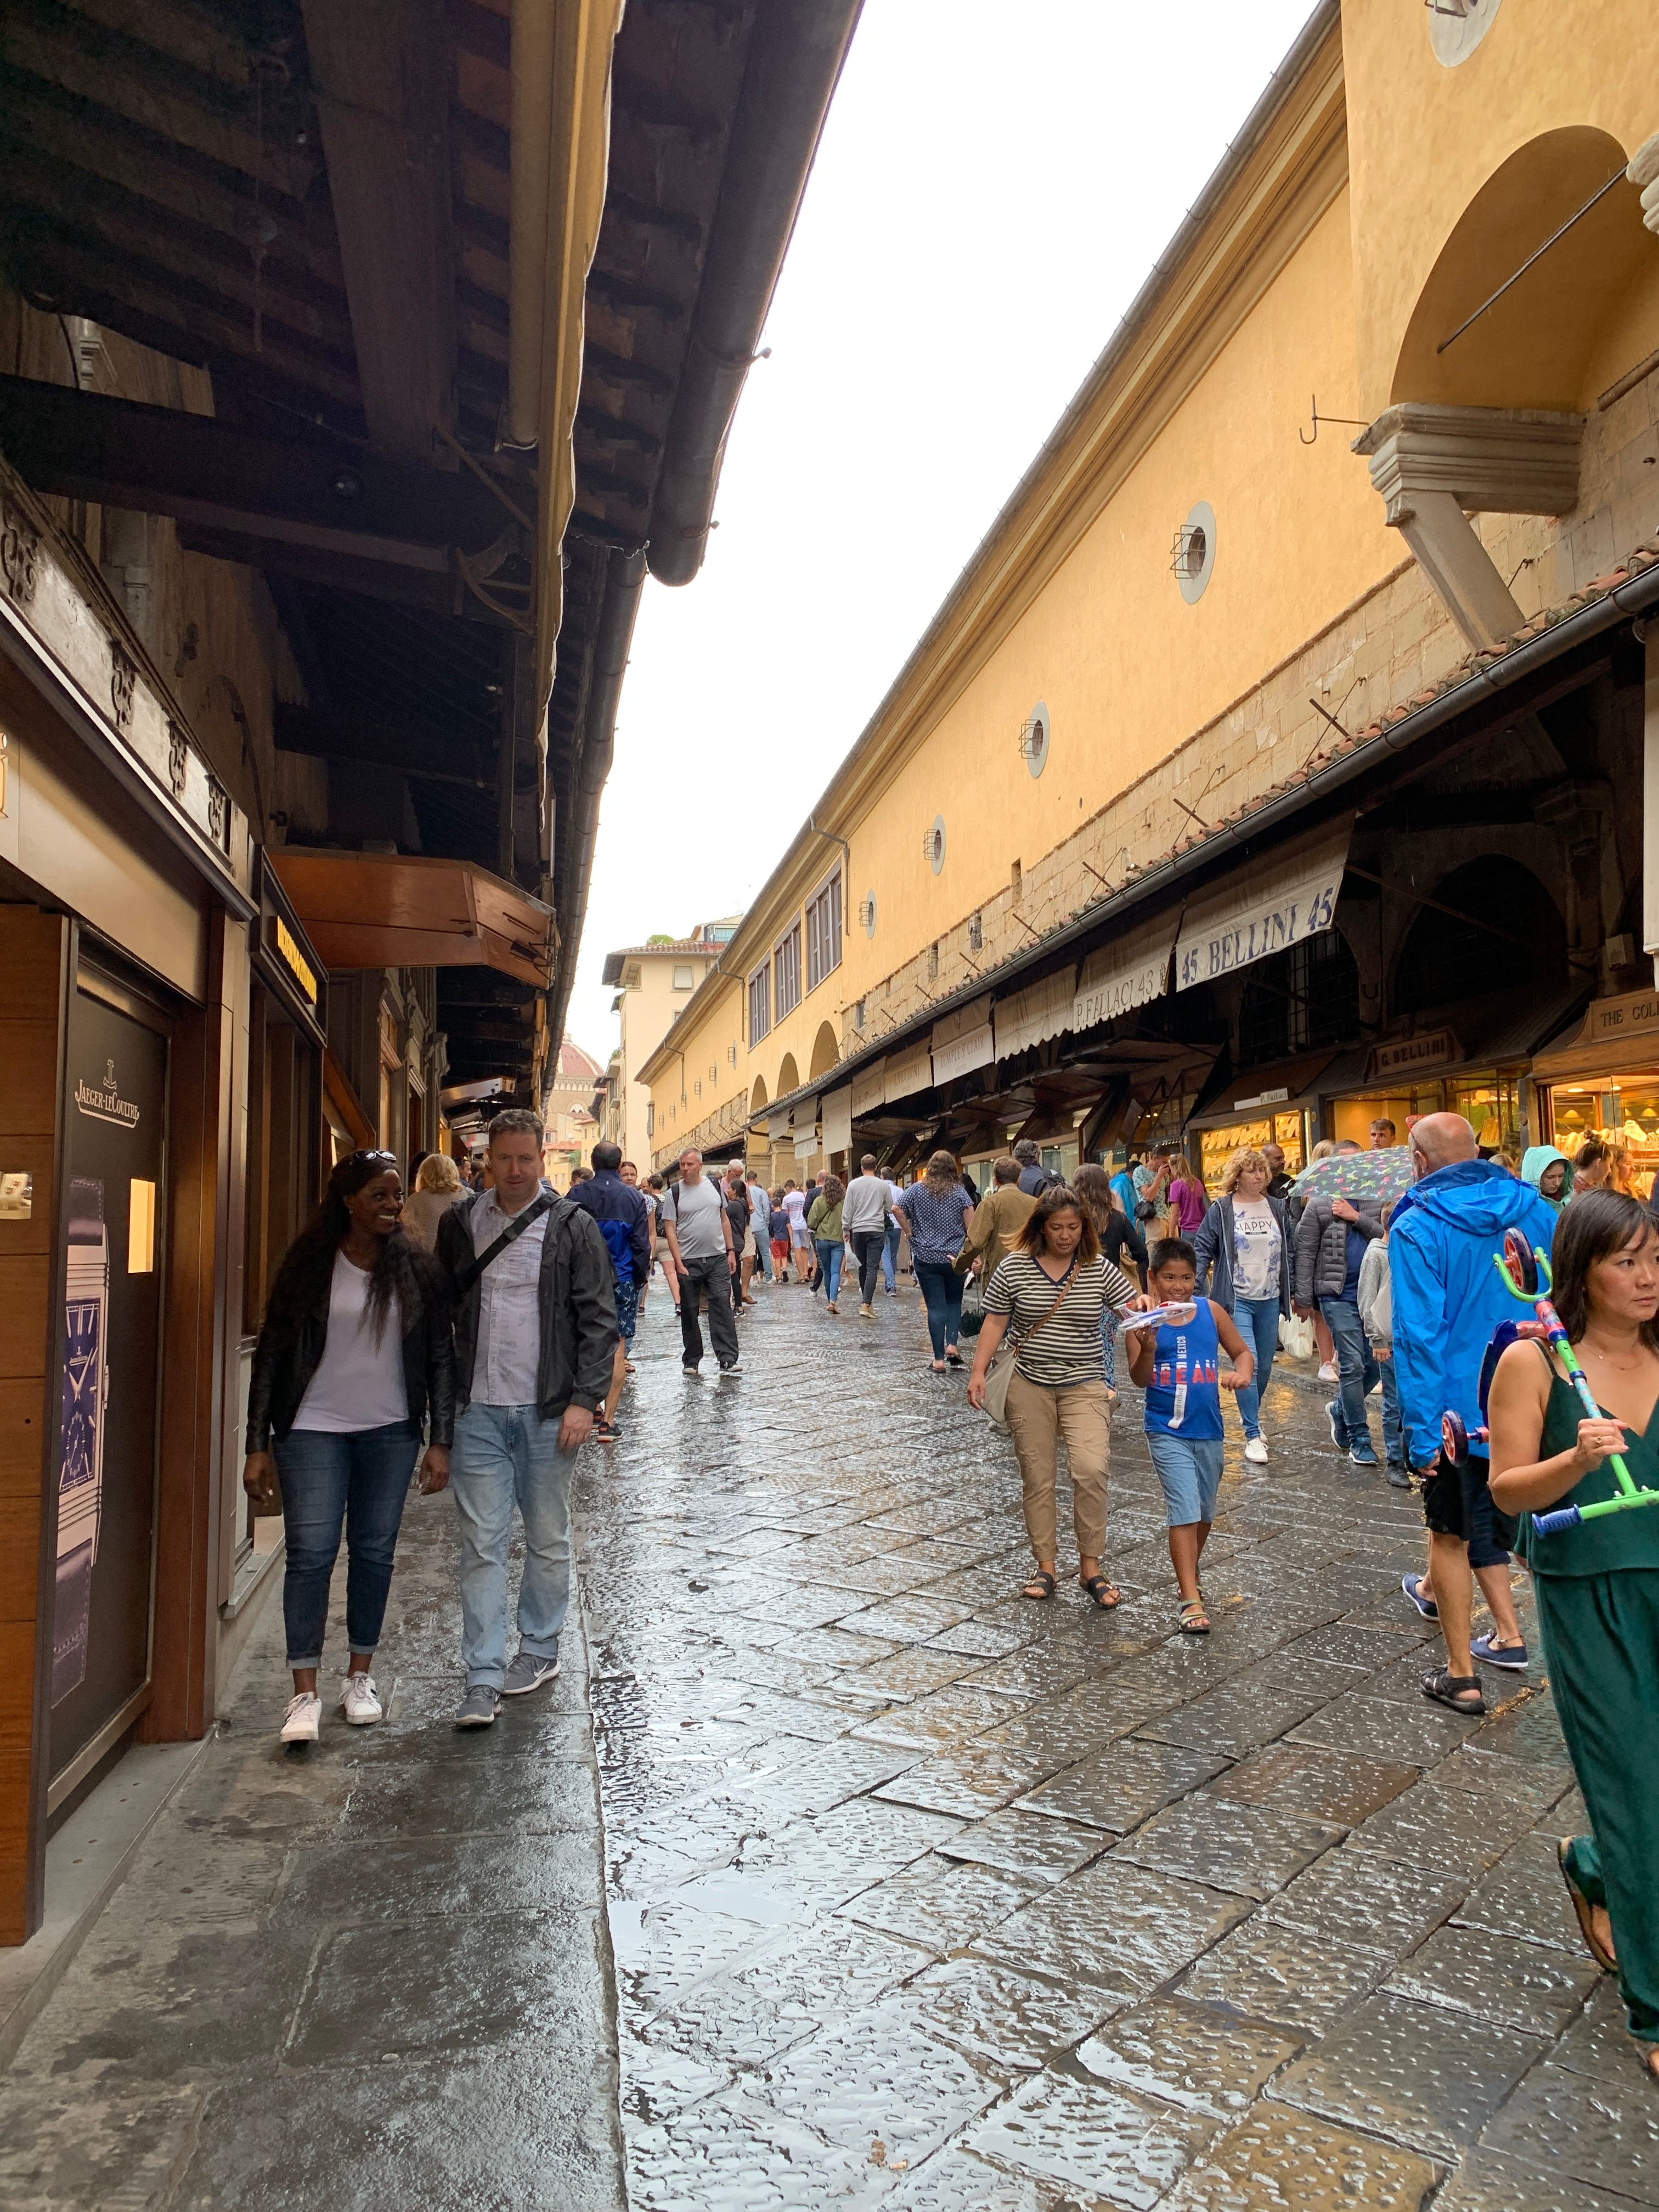 Tourists (like me!) shopping for souvenirs on the Ponte Vecchio, Florence, 2019.